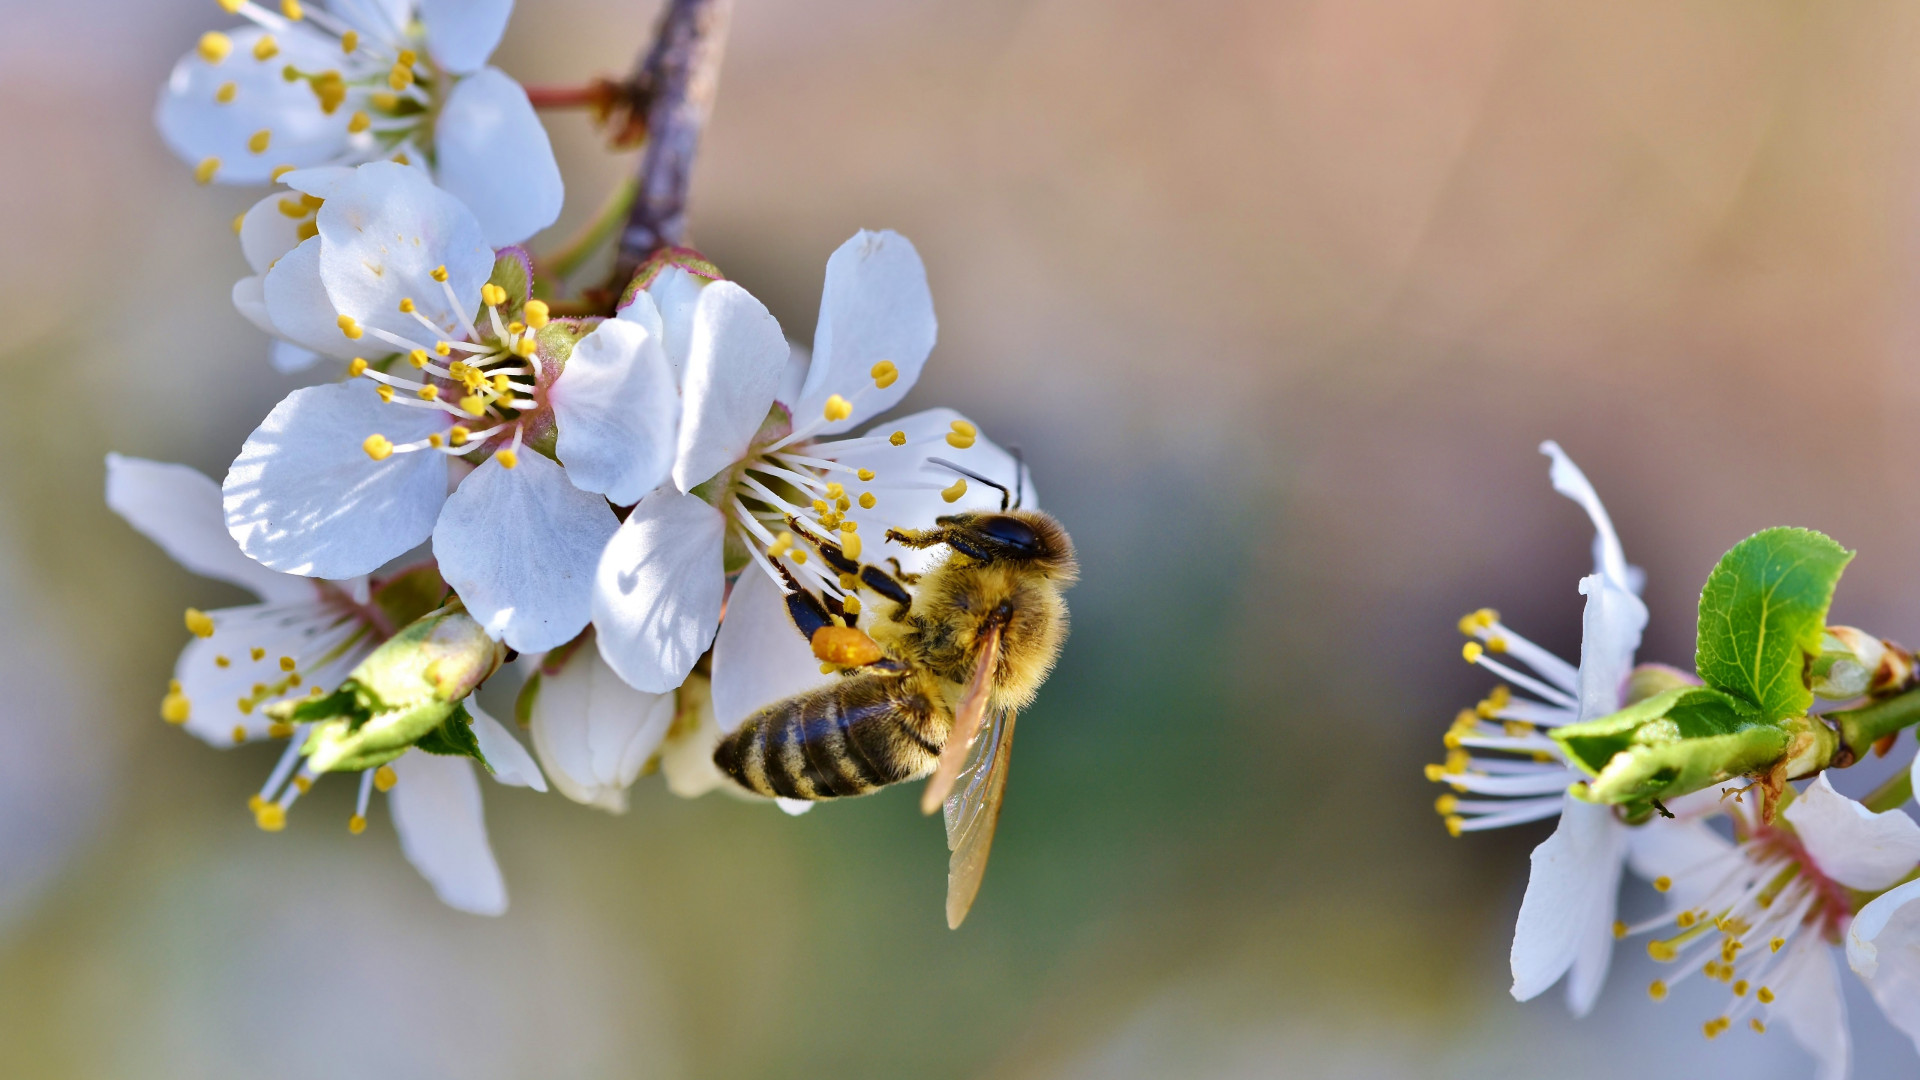 Spring, bee, blossoms, flower wallpaper 1920x1080